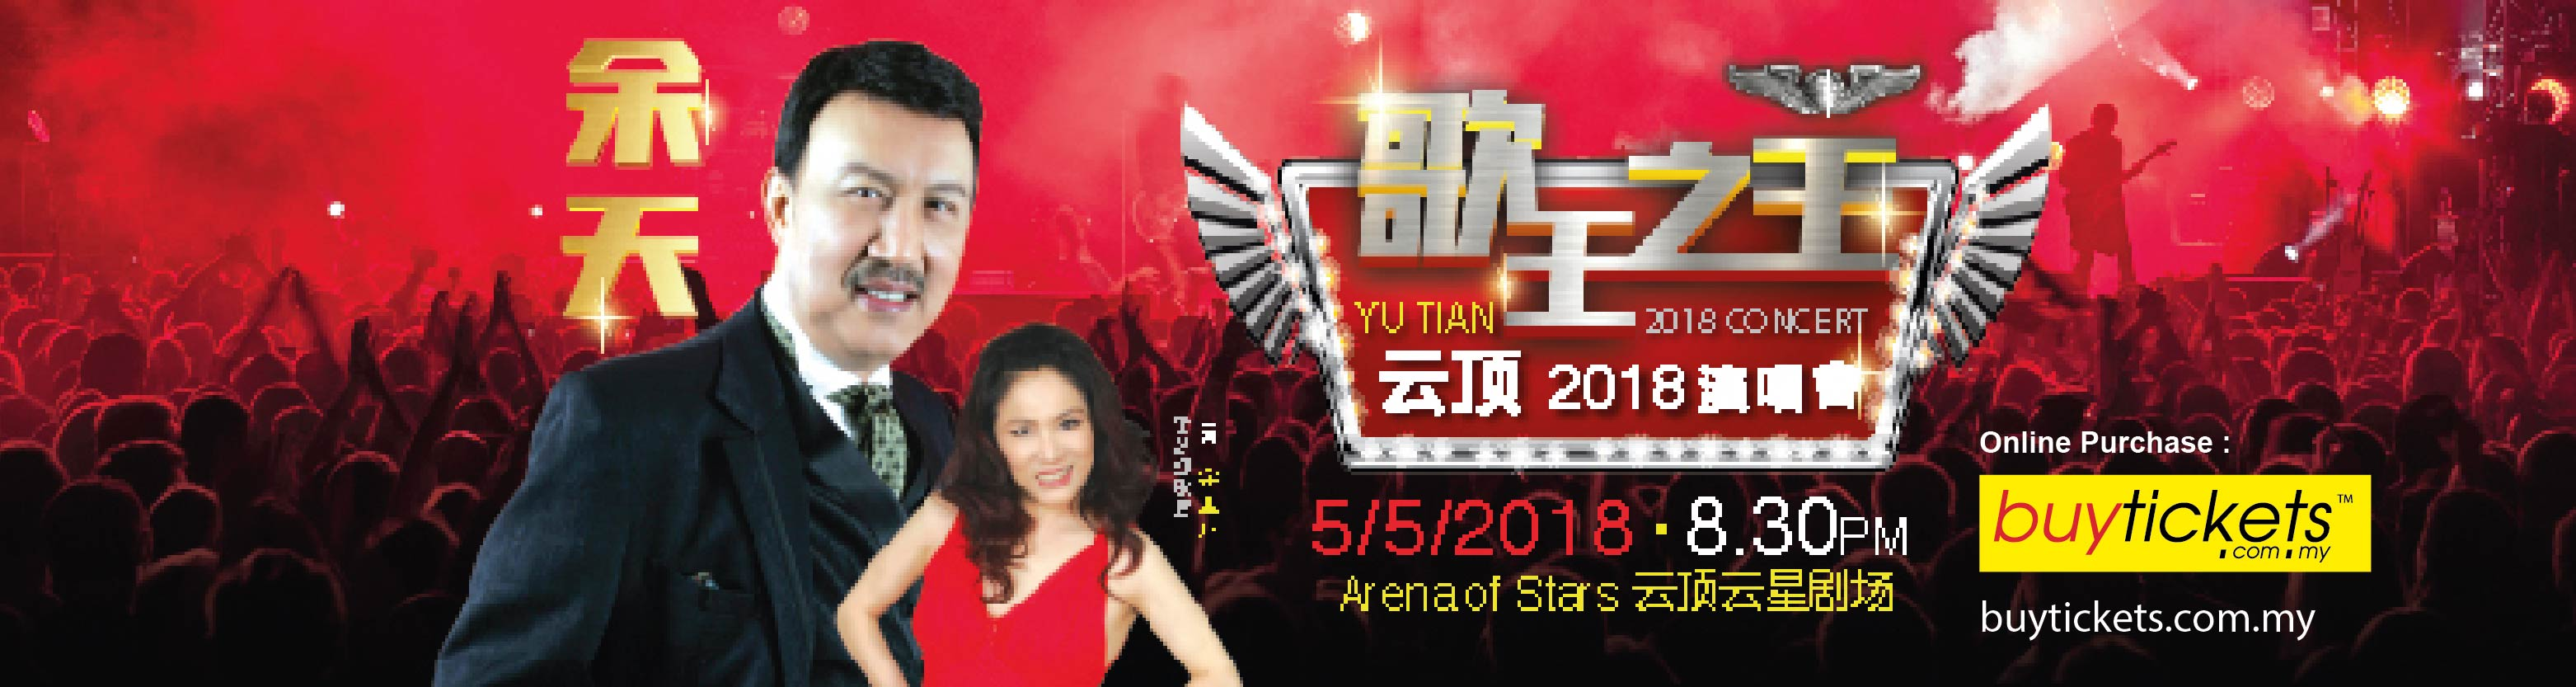 Yu Tian 2018 Concert Live in Genting